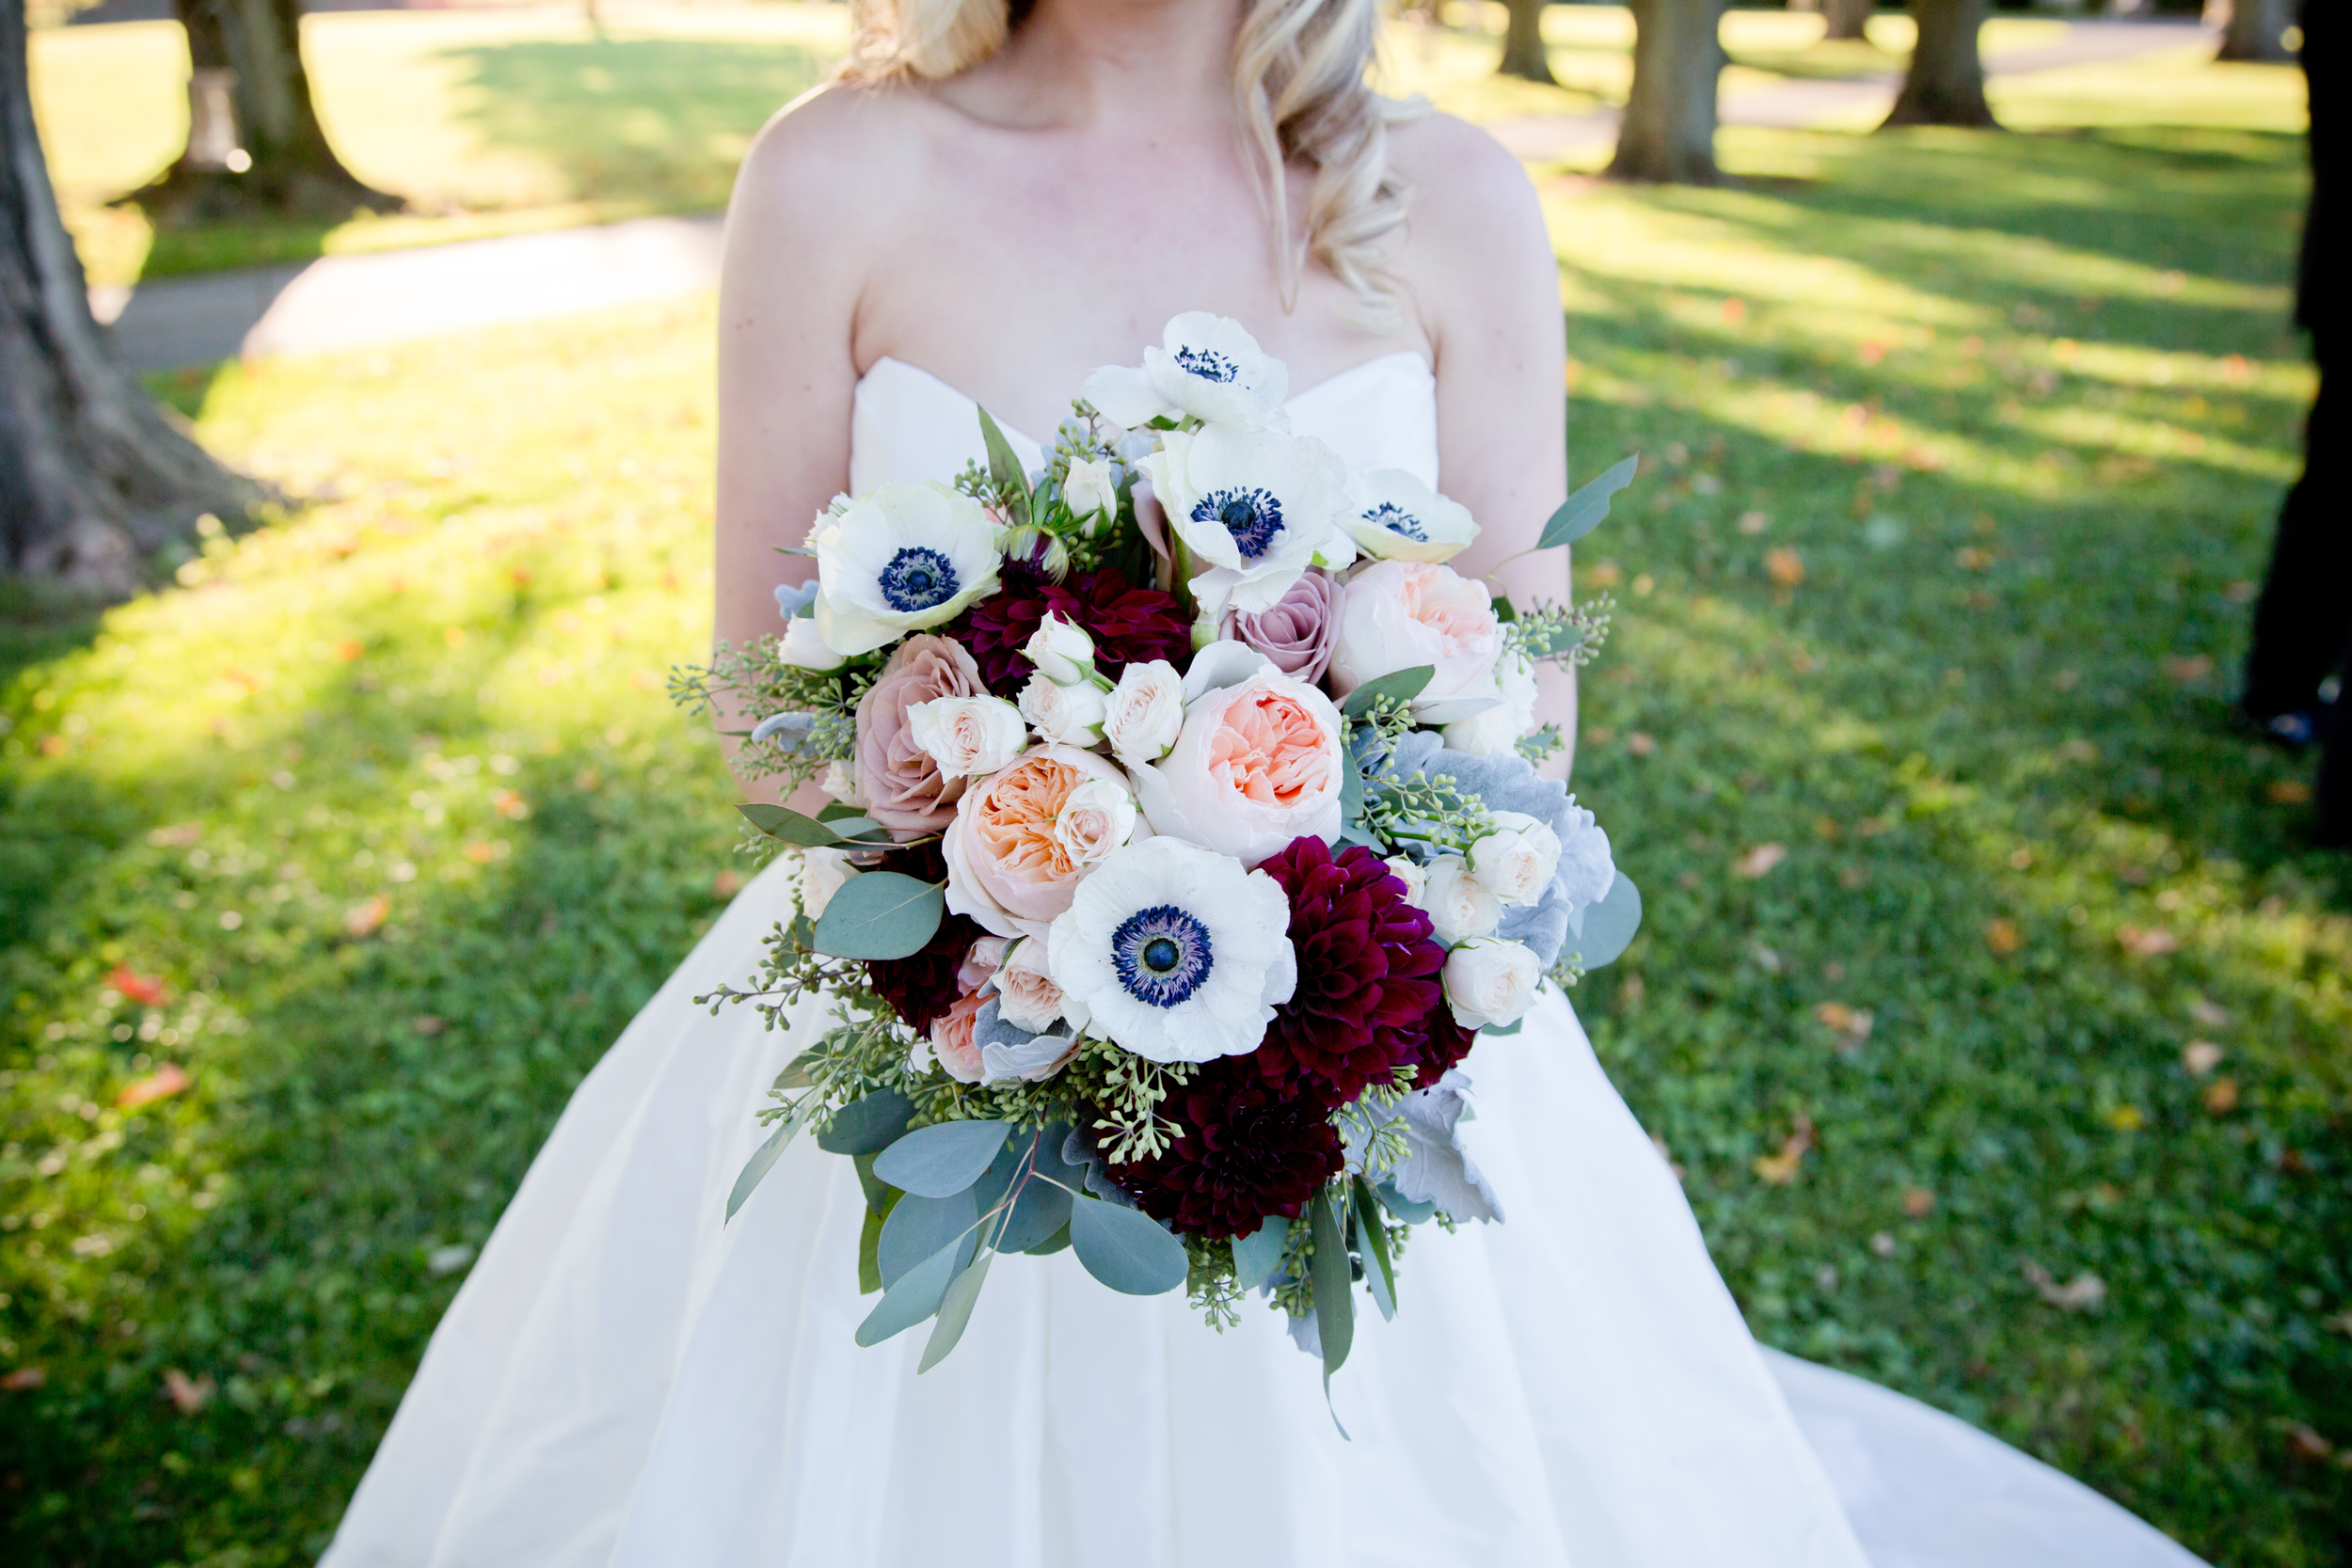 040_CarlyGaebe_SteadfastStudio_WeddingPhotography_Readyluck_Baltimore_Outdoors_HorseFarm_Fall_Bride_Bouquet.jpg